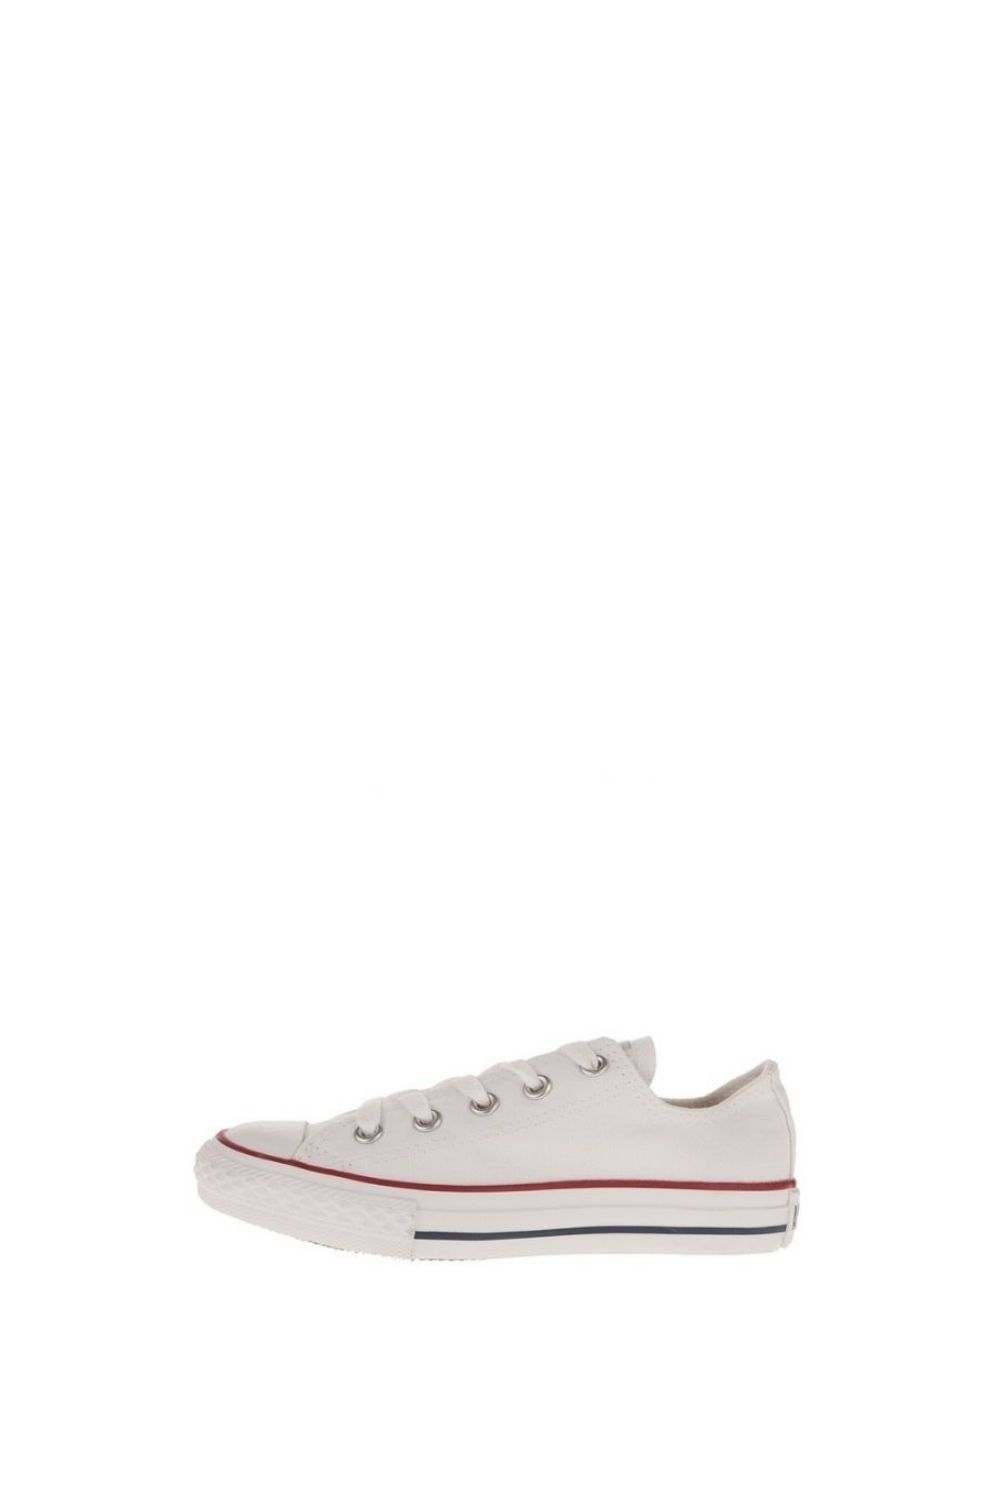 CONVERSE – Παιδικά sneakers CONVERSE Chuck Taylor AS Core OX λευκά